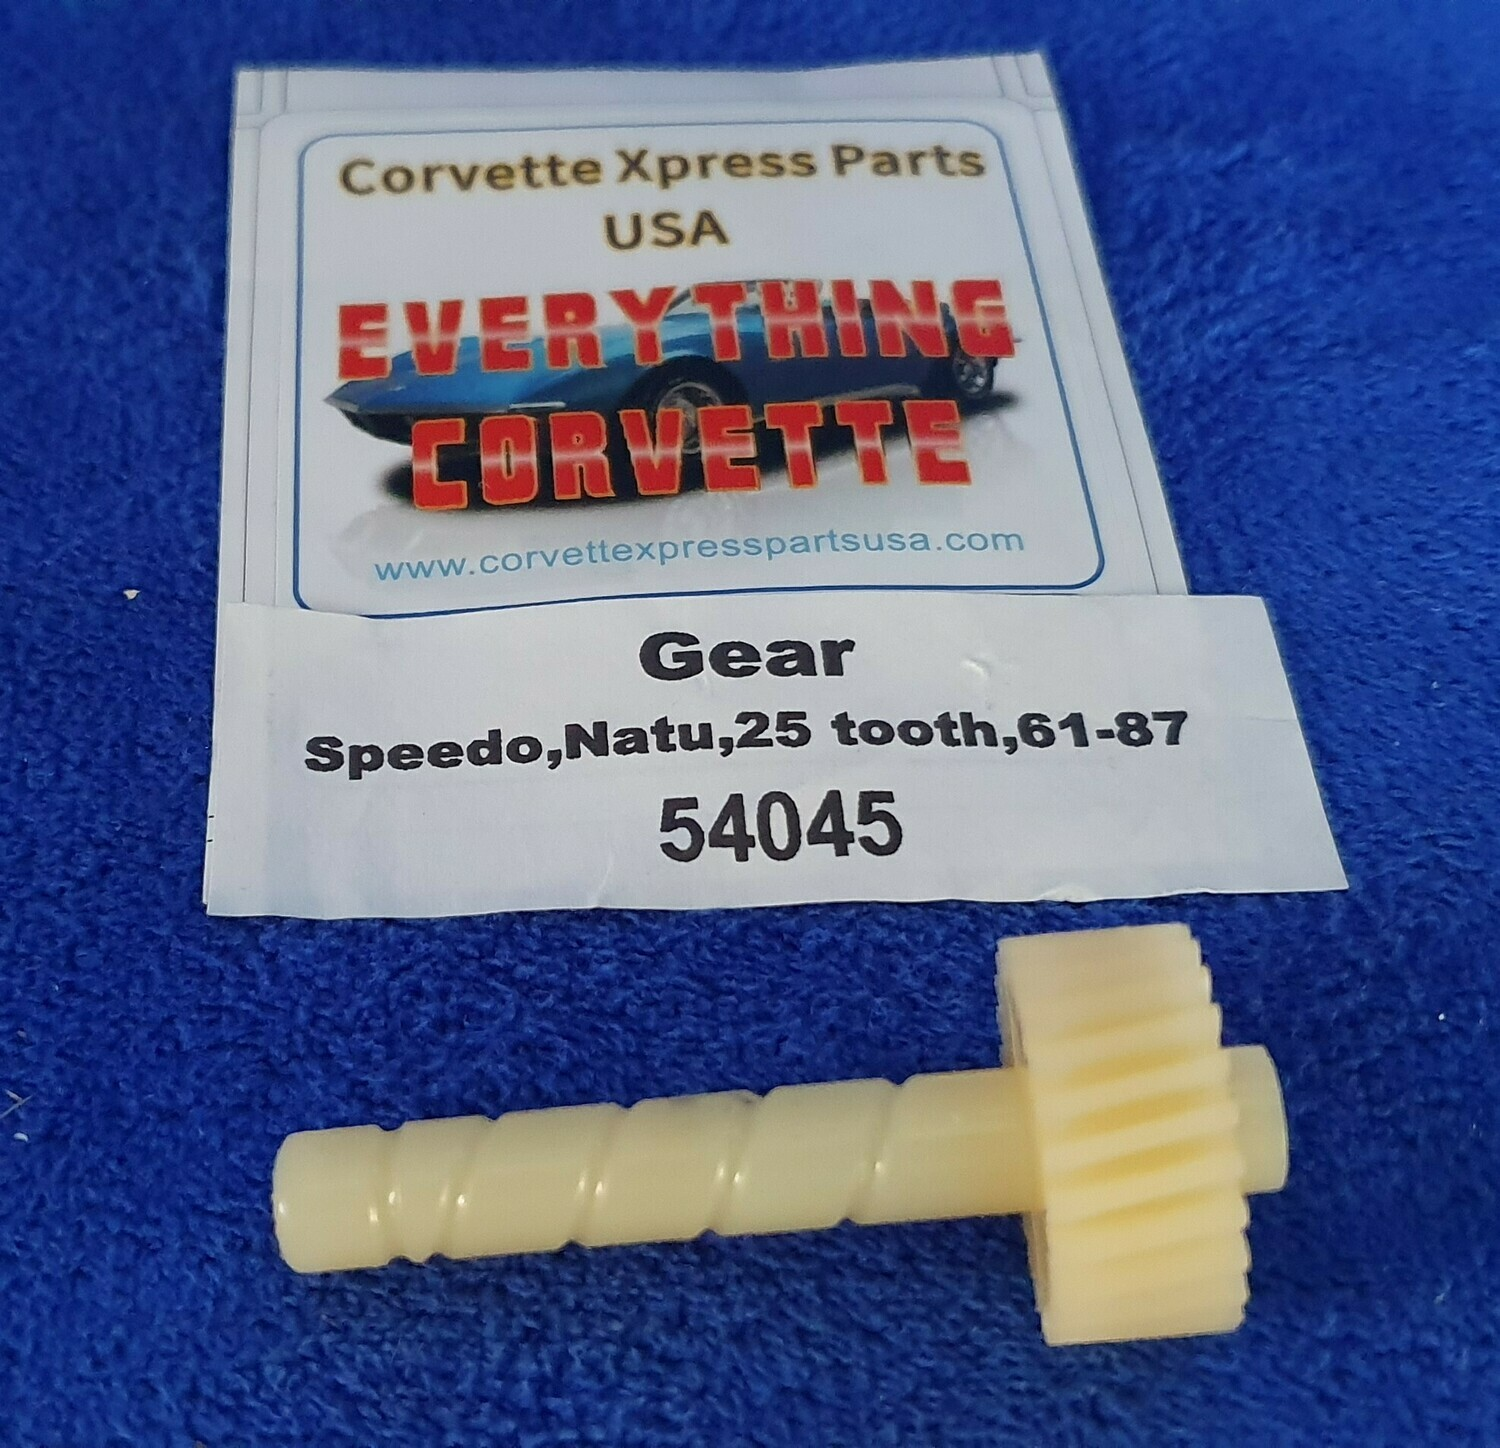 GEAR-SPEEDOMETER DRIVE-NATURAL-25 TOOTH-4.56 REAR-61-81 (#54045)